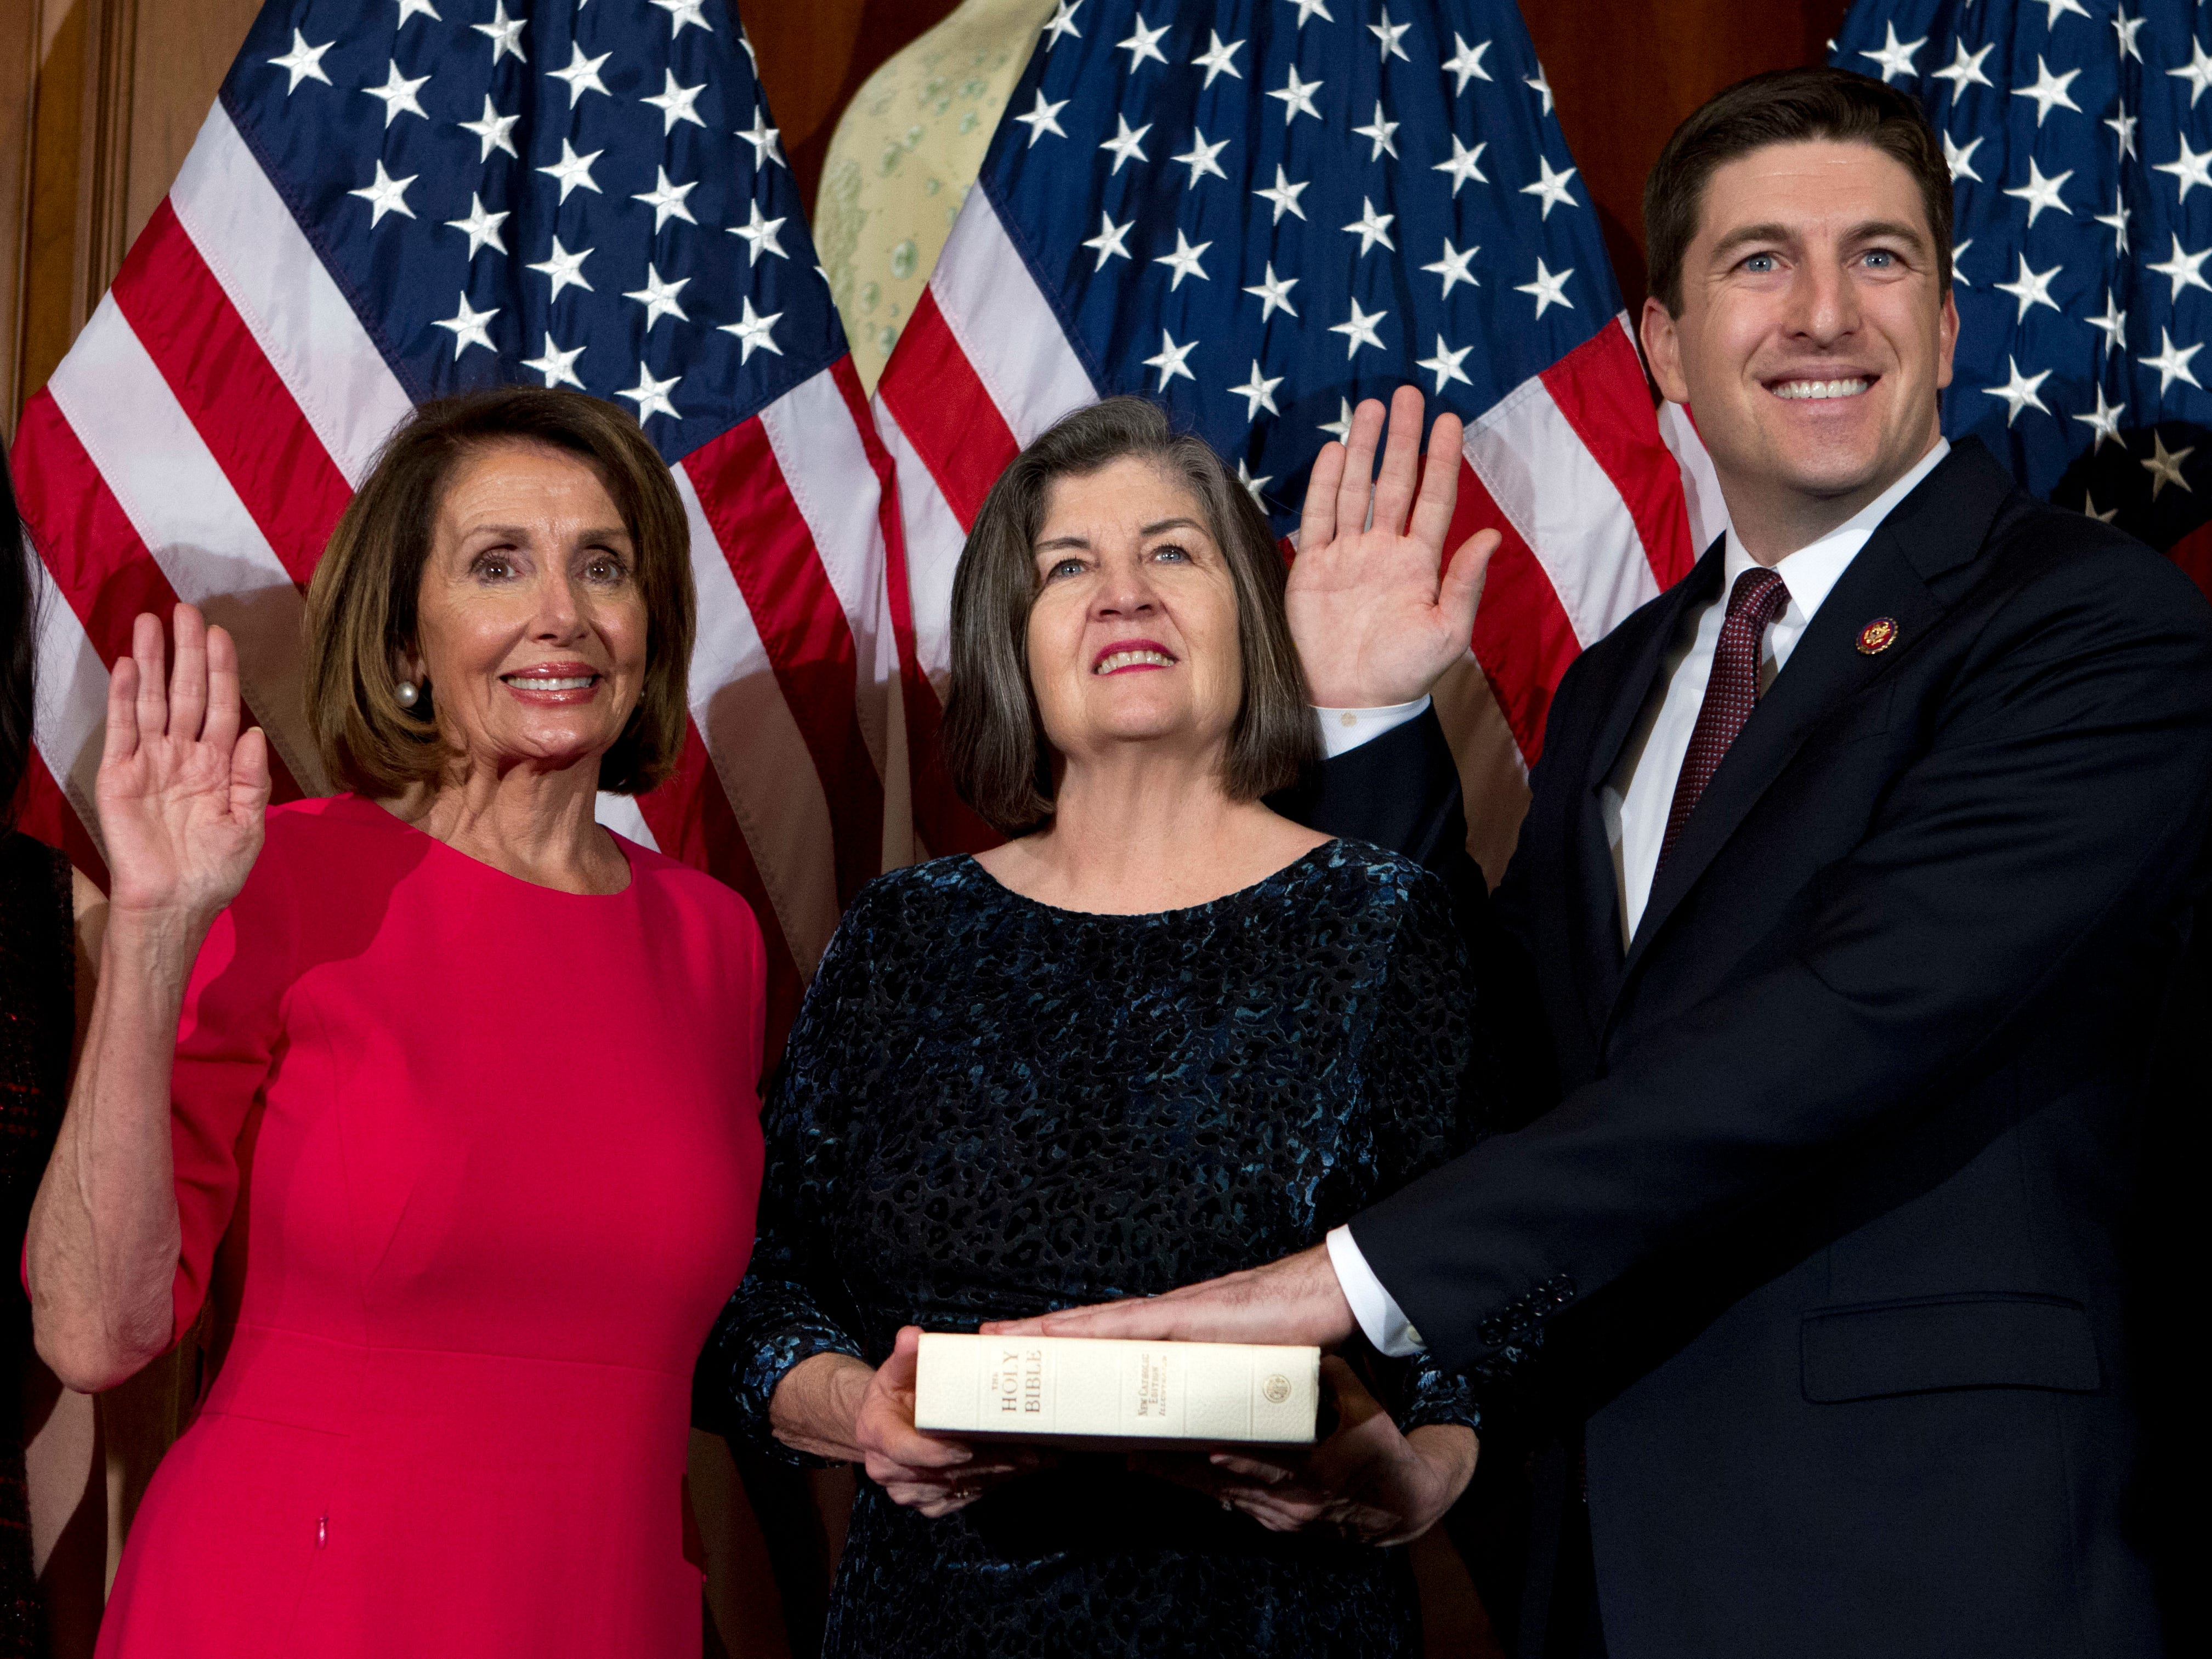 Bryan Steil, Wisconsin's newest member of Congress, takes office amid government shutdown